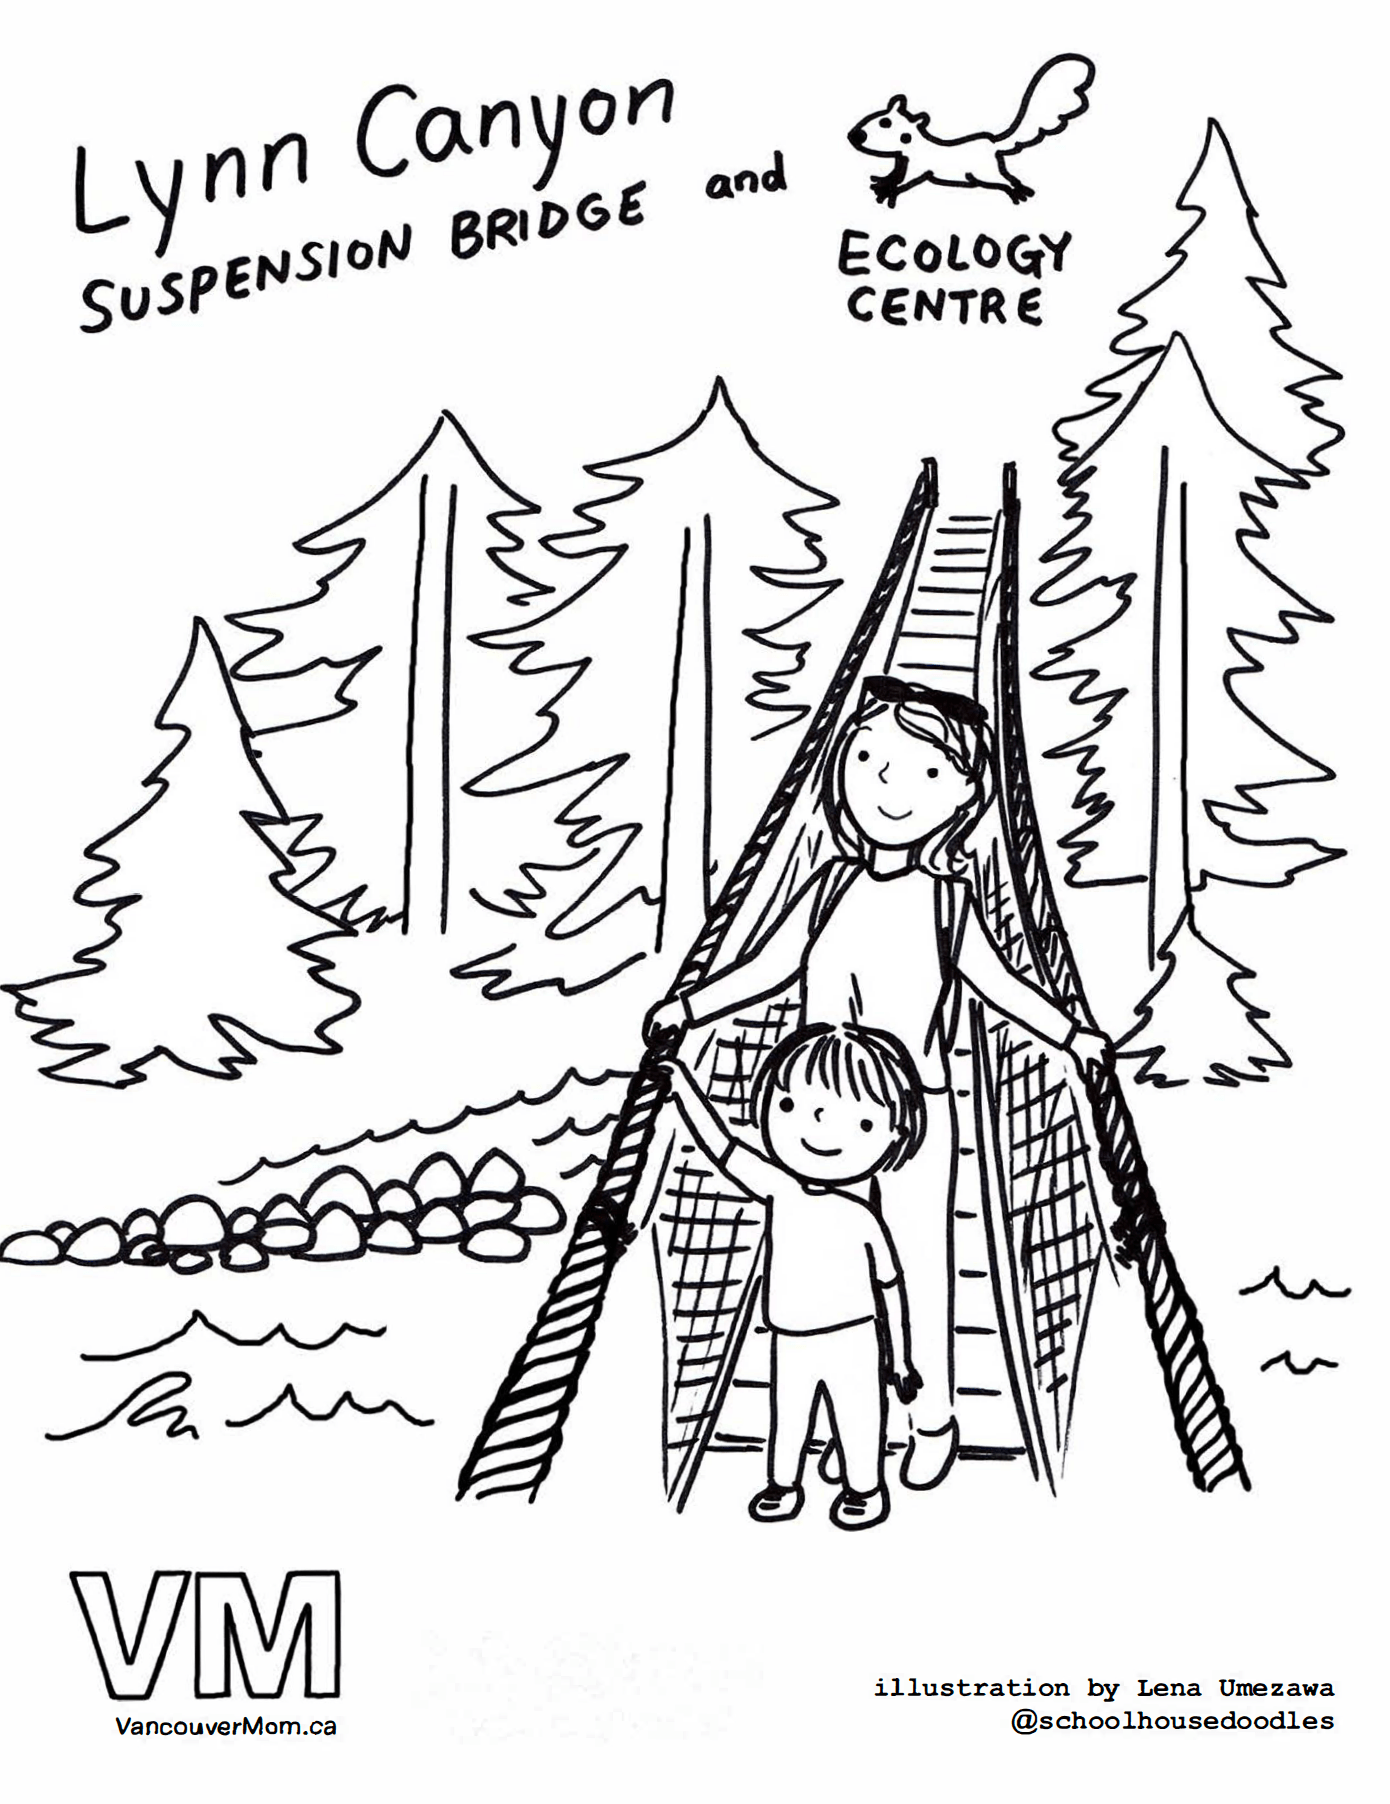 Colouring books for adults vancouver - Lynn Canyon Suspension Bridge And Ecology Centre North Vancouver Colouring Page